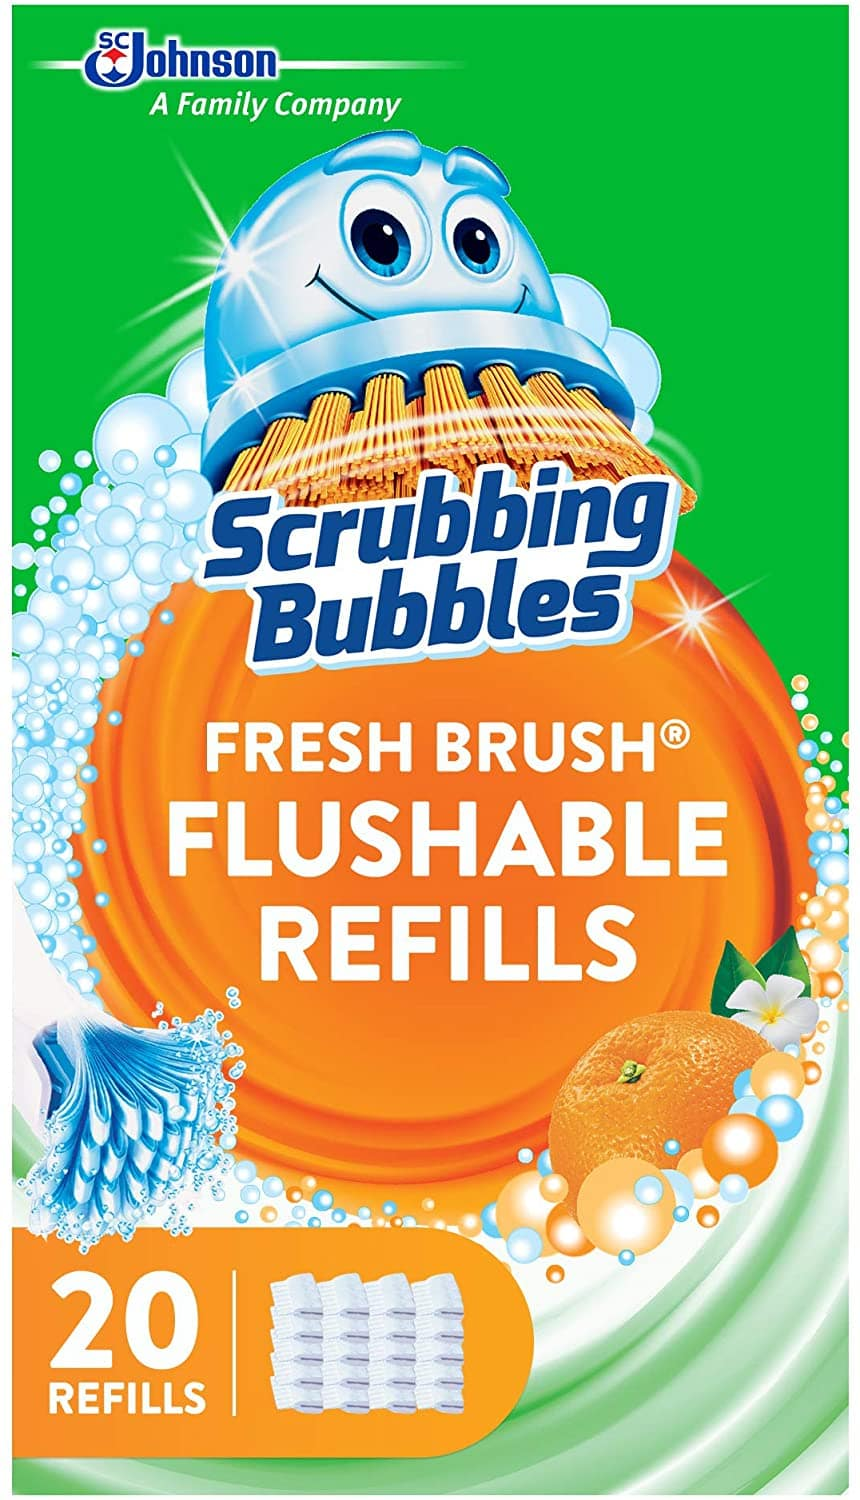 20-Count Scrubbing Bubbles Fresh Brush Flushable Refills (Citrus) $4.70 w/ S&S + Free Shipping w/ Prime or on $25+